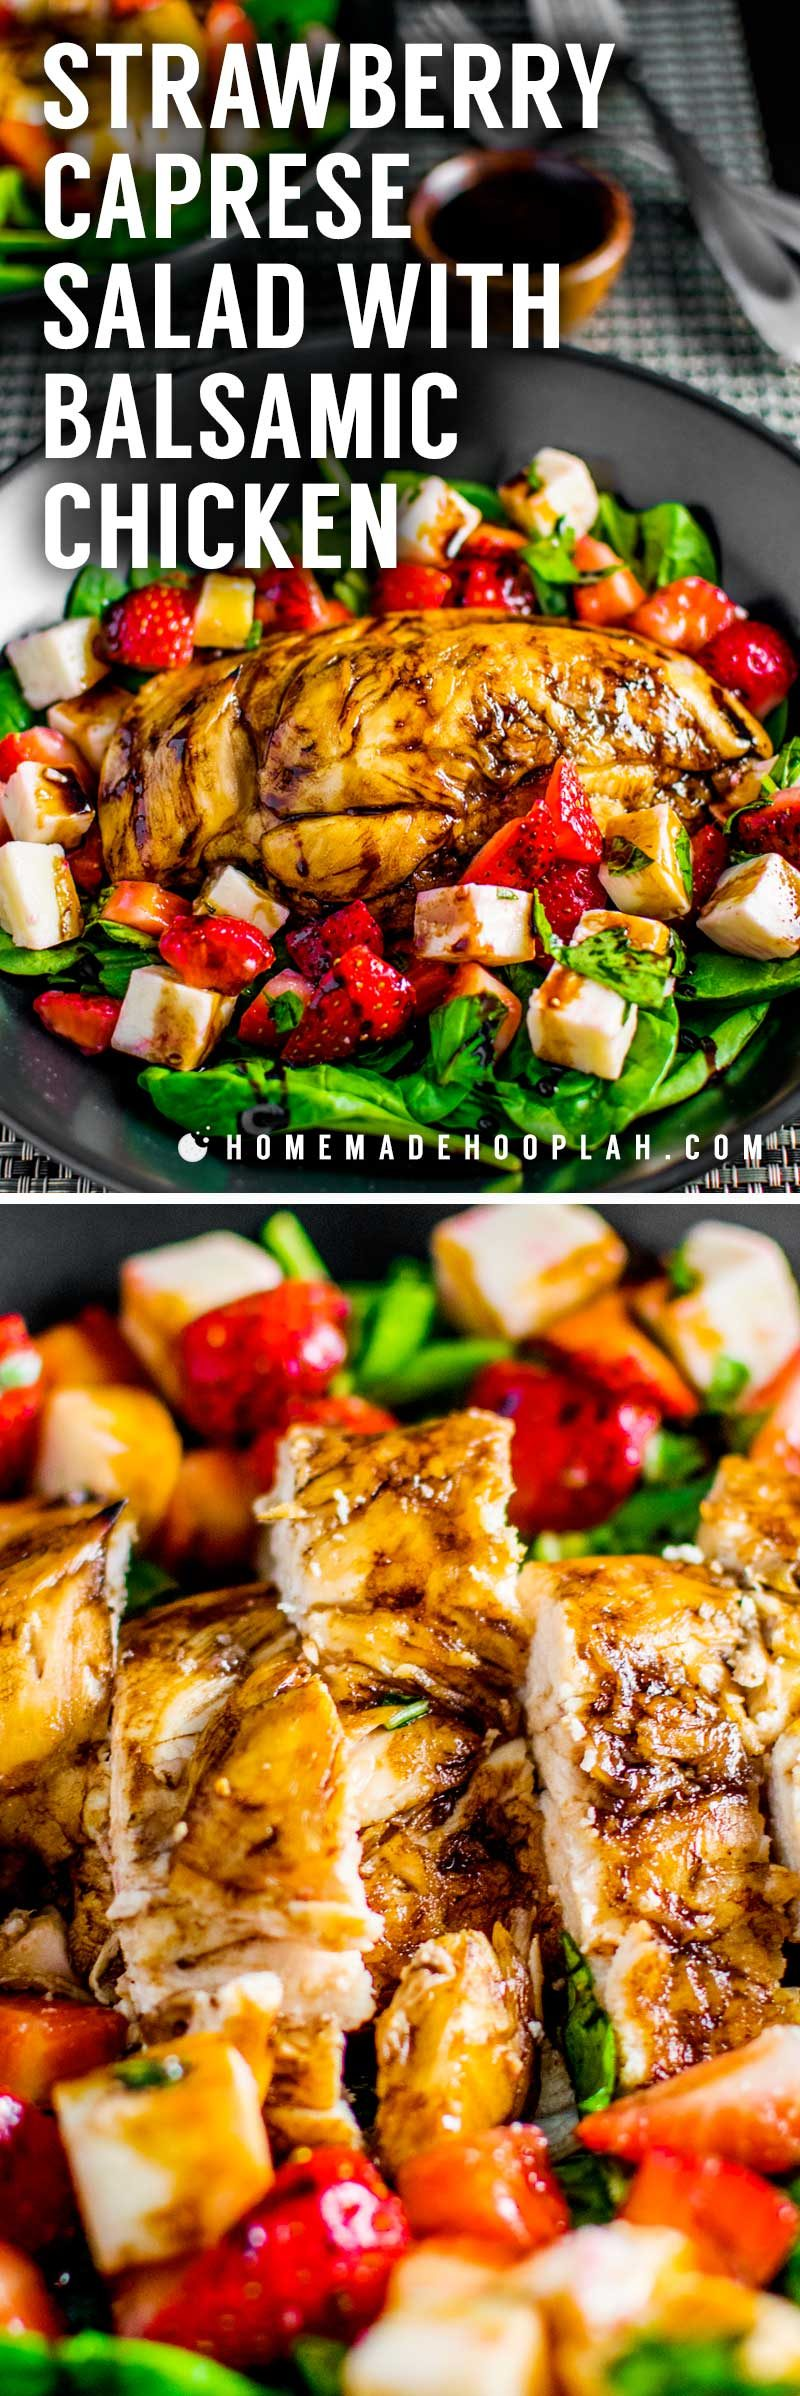 Strawberry caprese chicken salad.